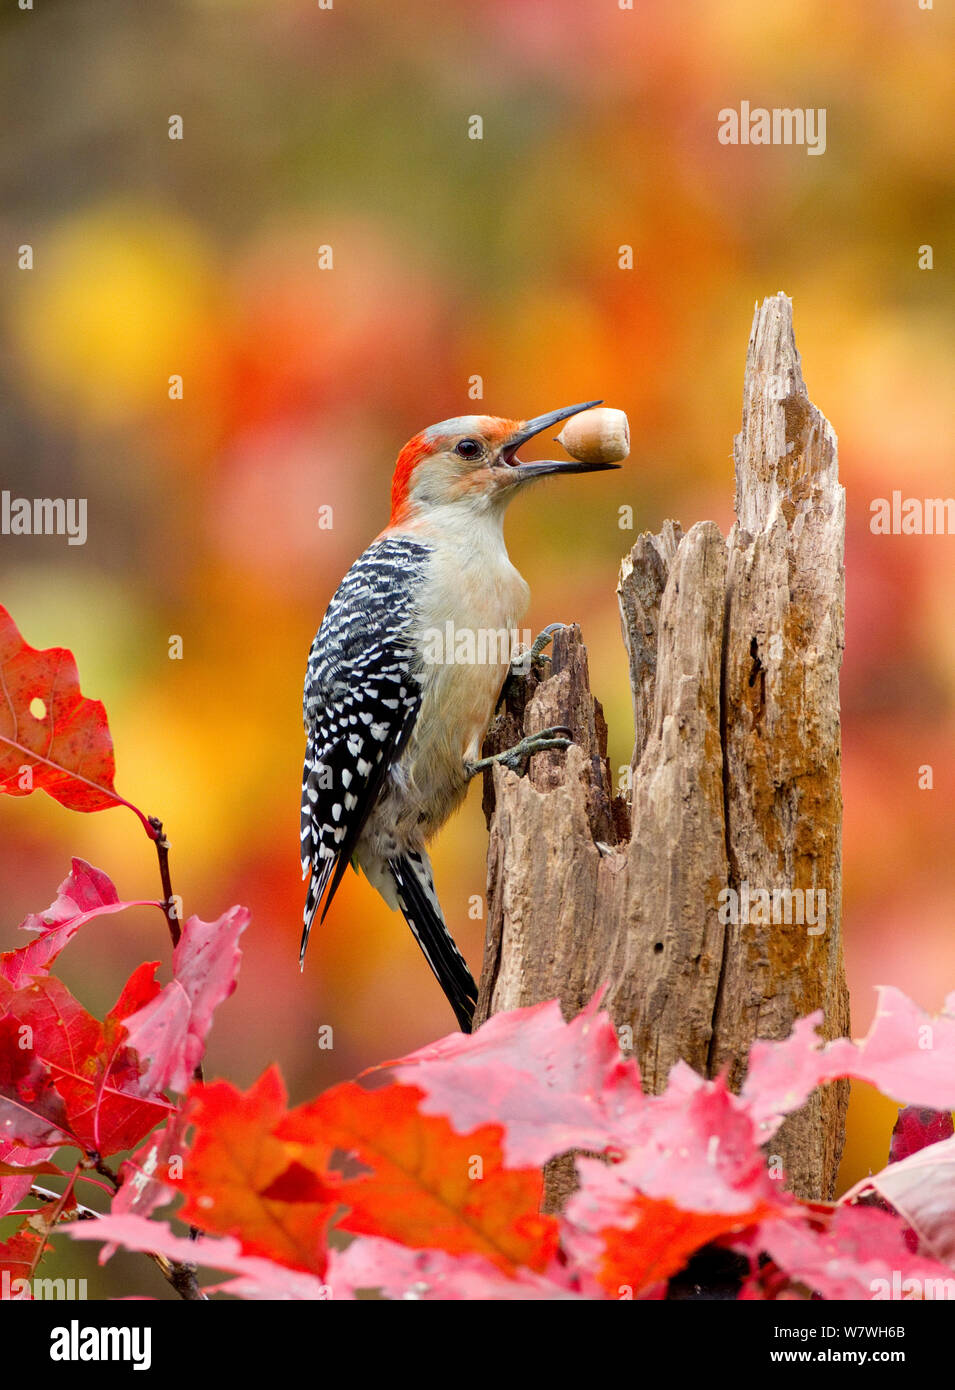 Female Red bellied woodpecker (Melanerpes carolinus) with acorn in beak, New York, USA, October. Stock Photo